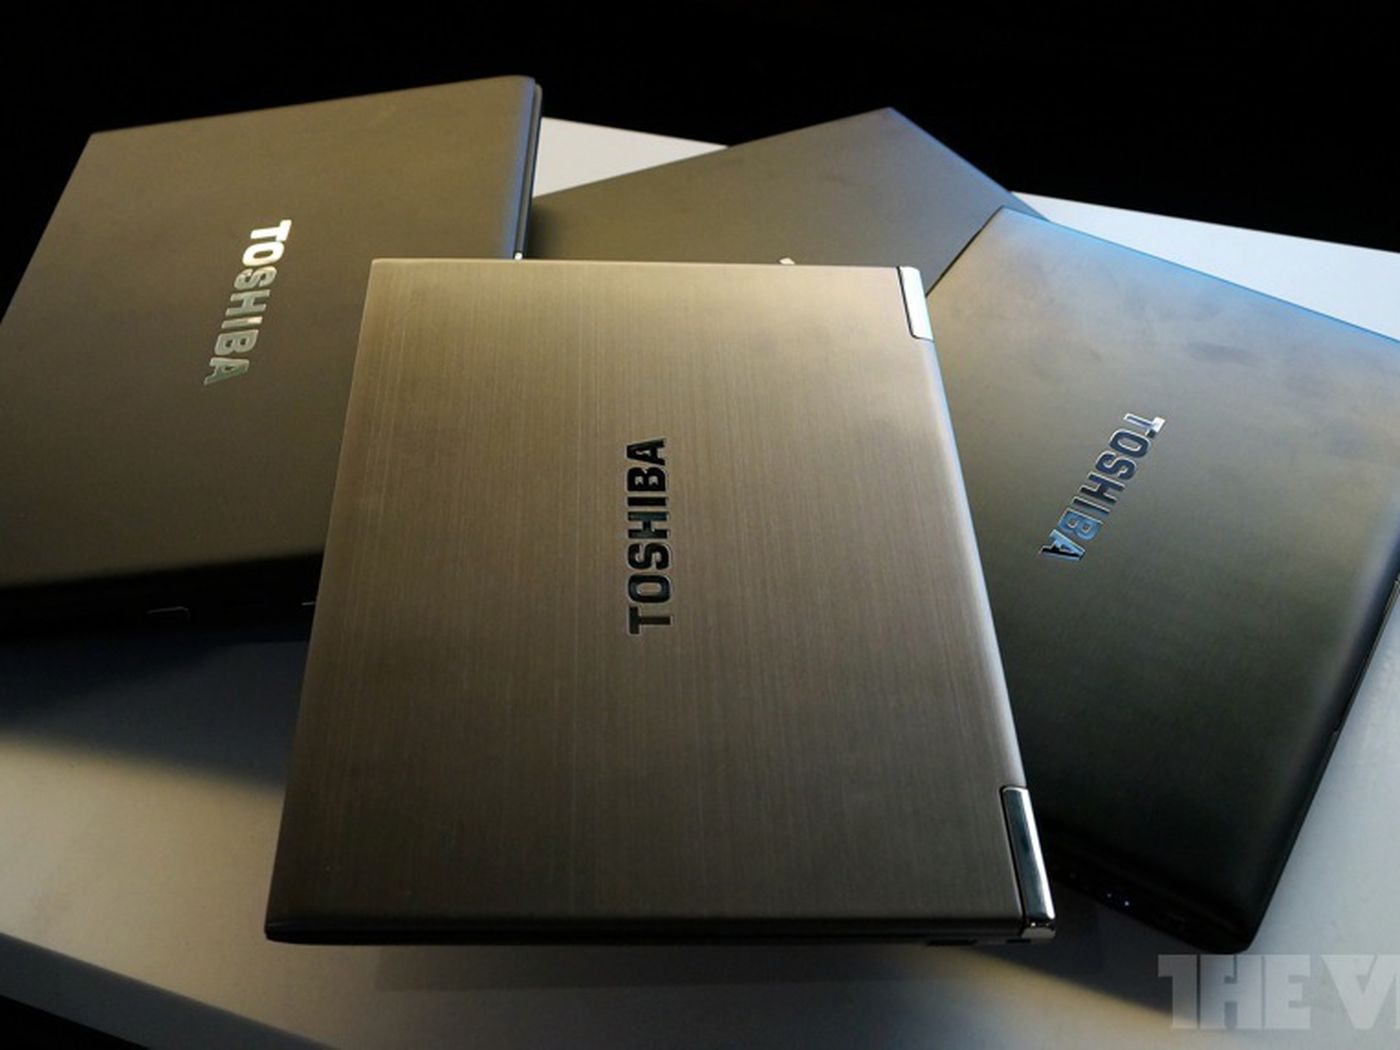 toshiba is officially out of the laptop